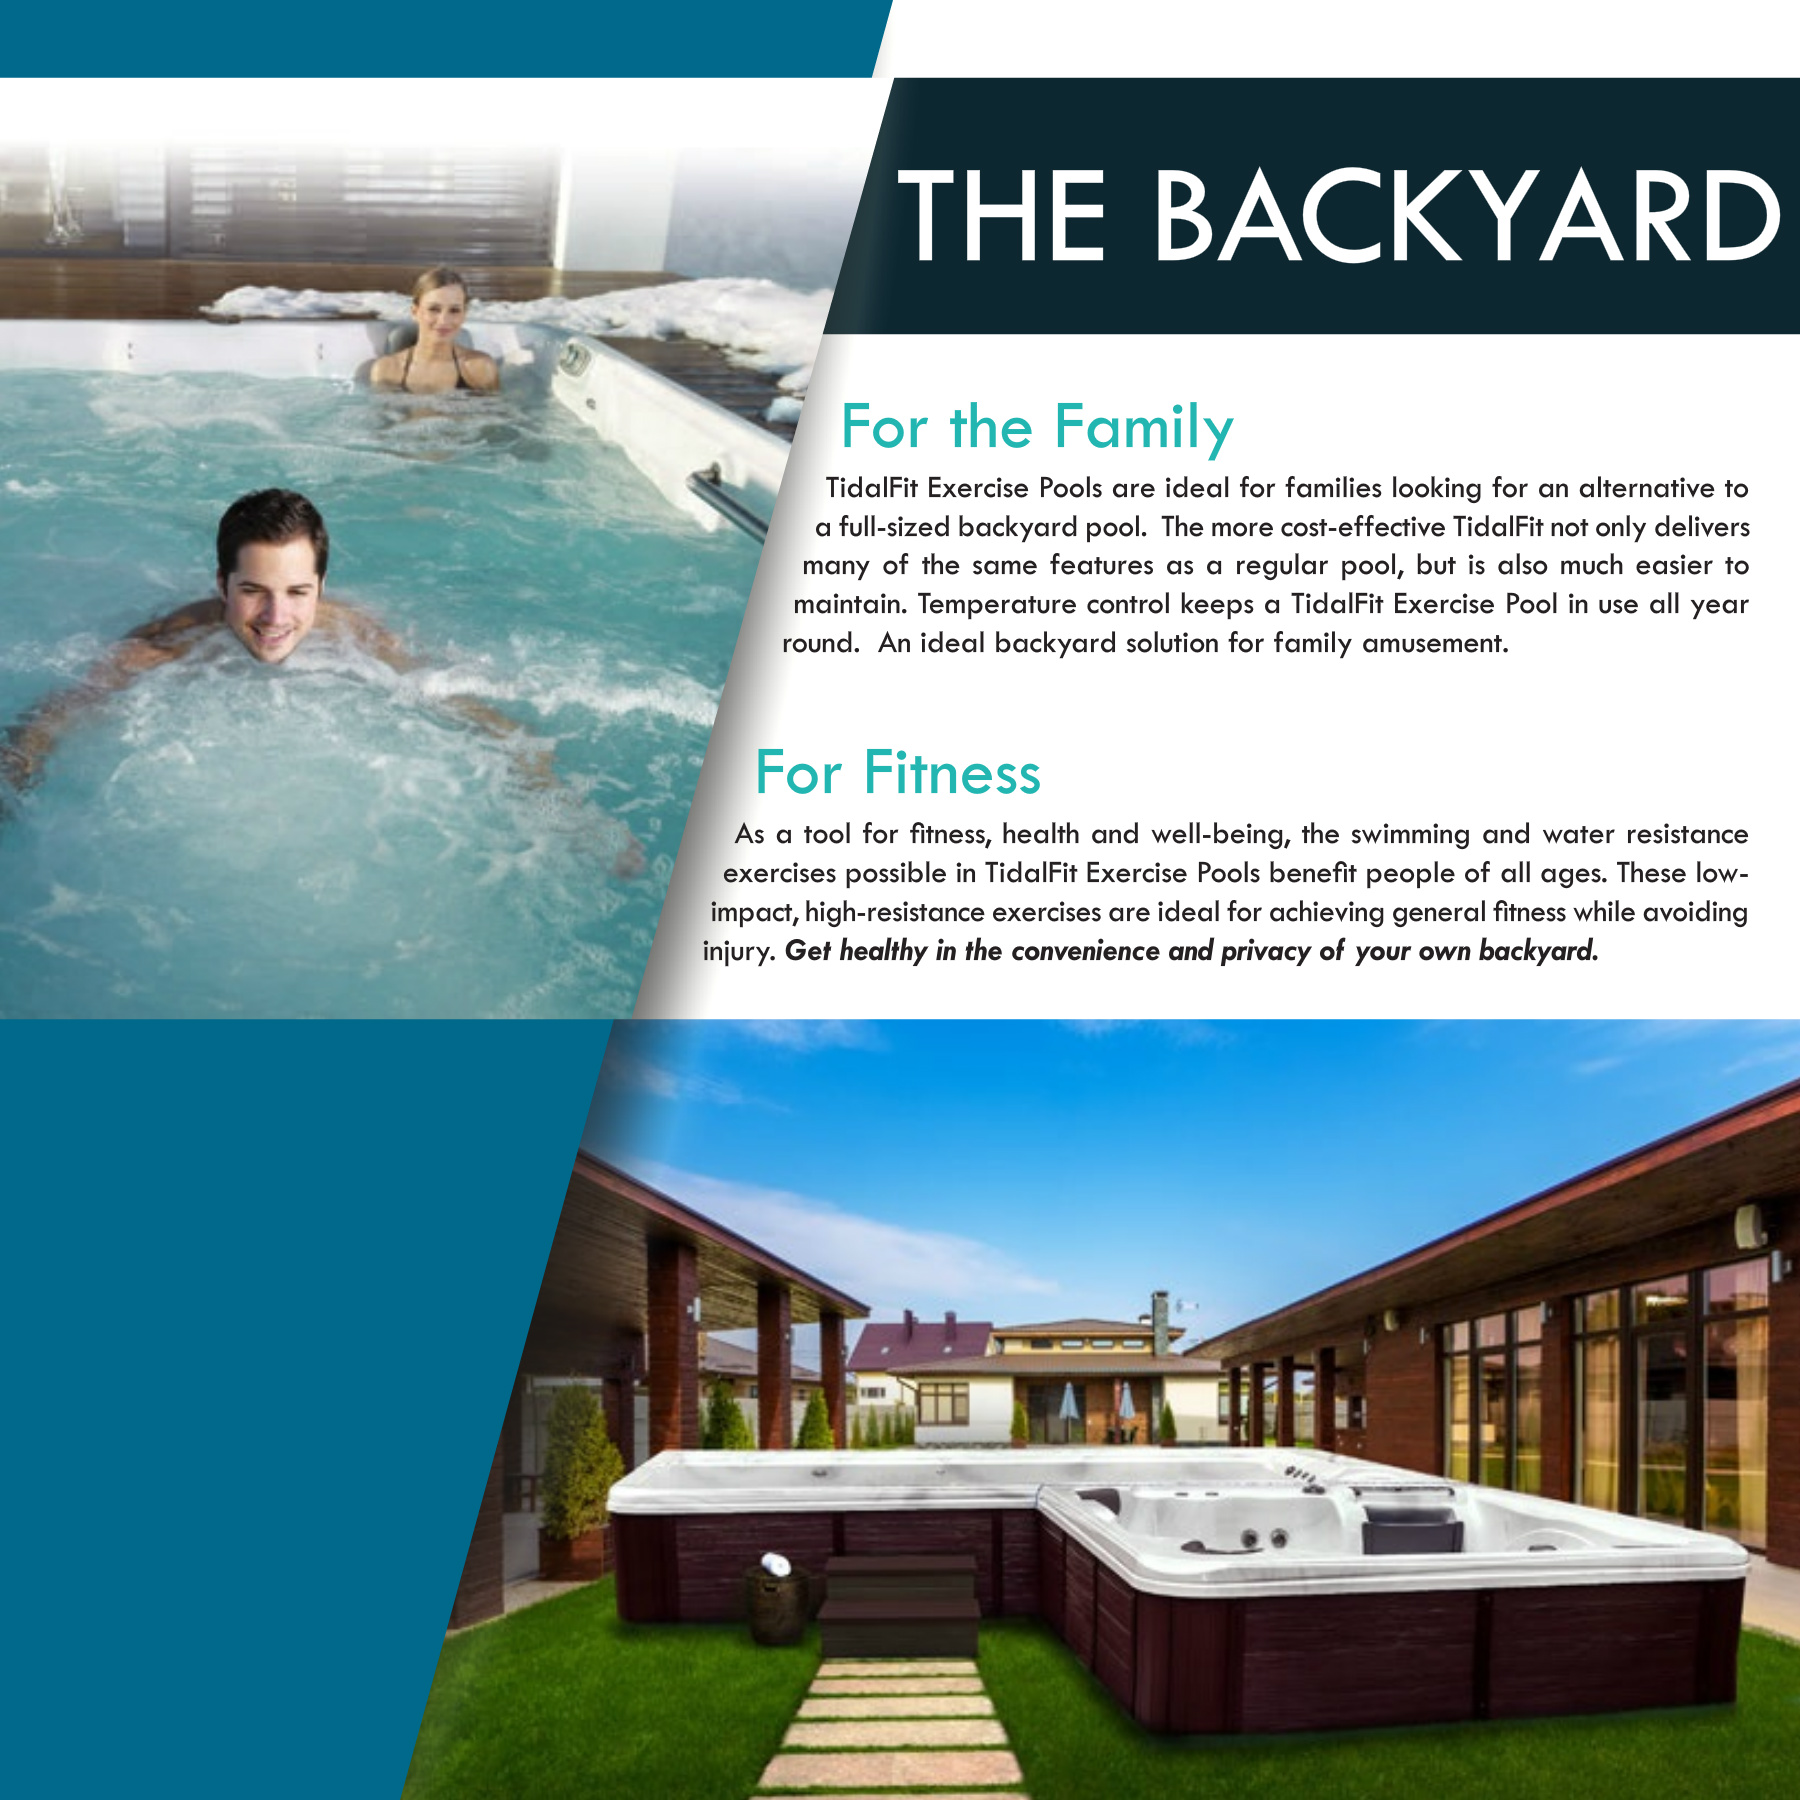 Backyard Pool Exercises 2018 tidalfit brochure pages 1 - 32 - text version | anyflip